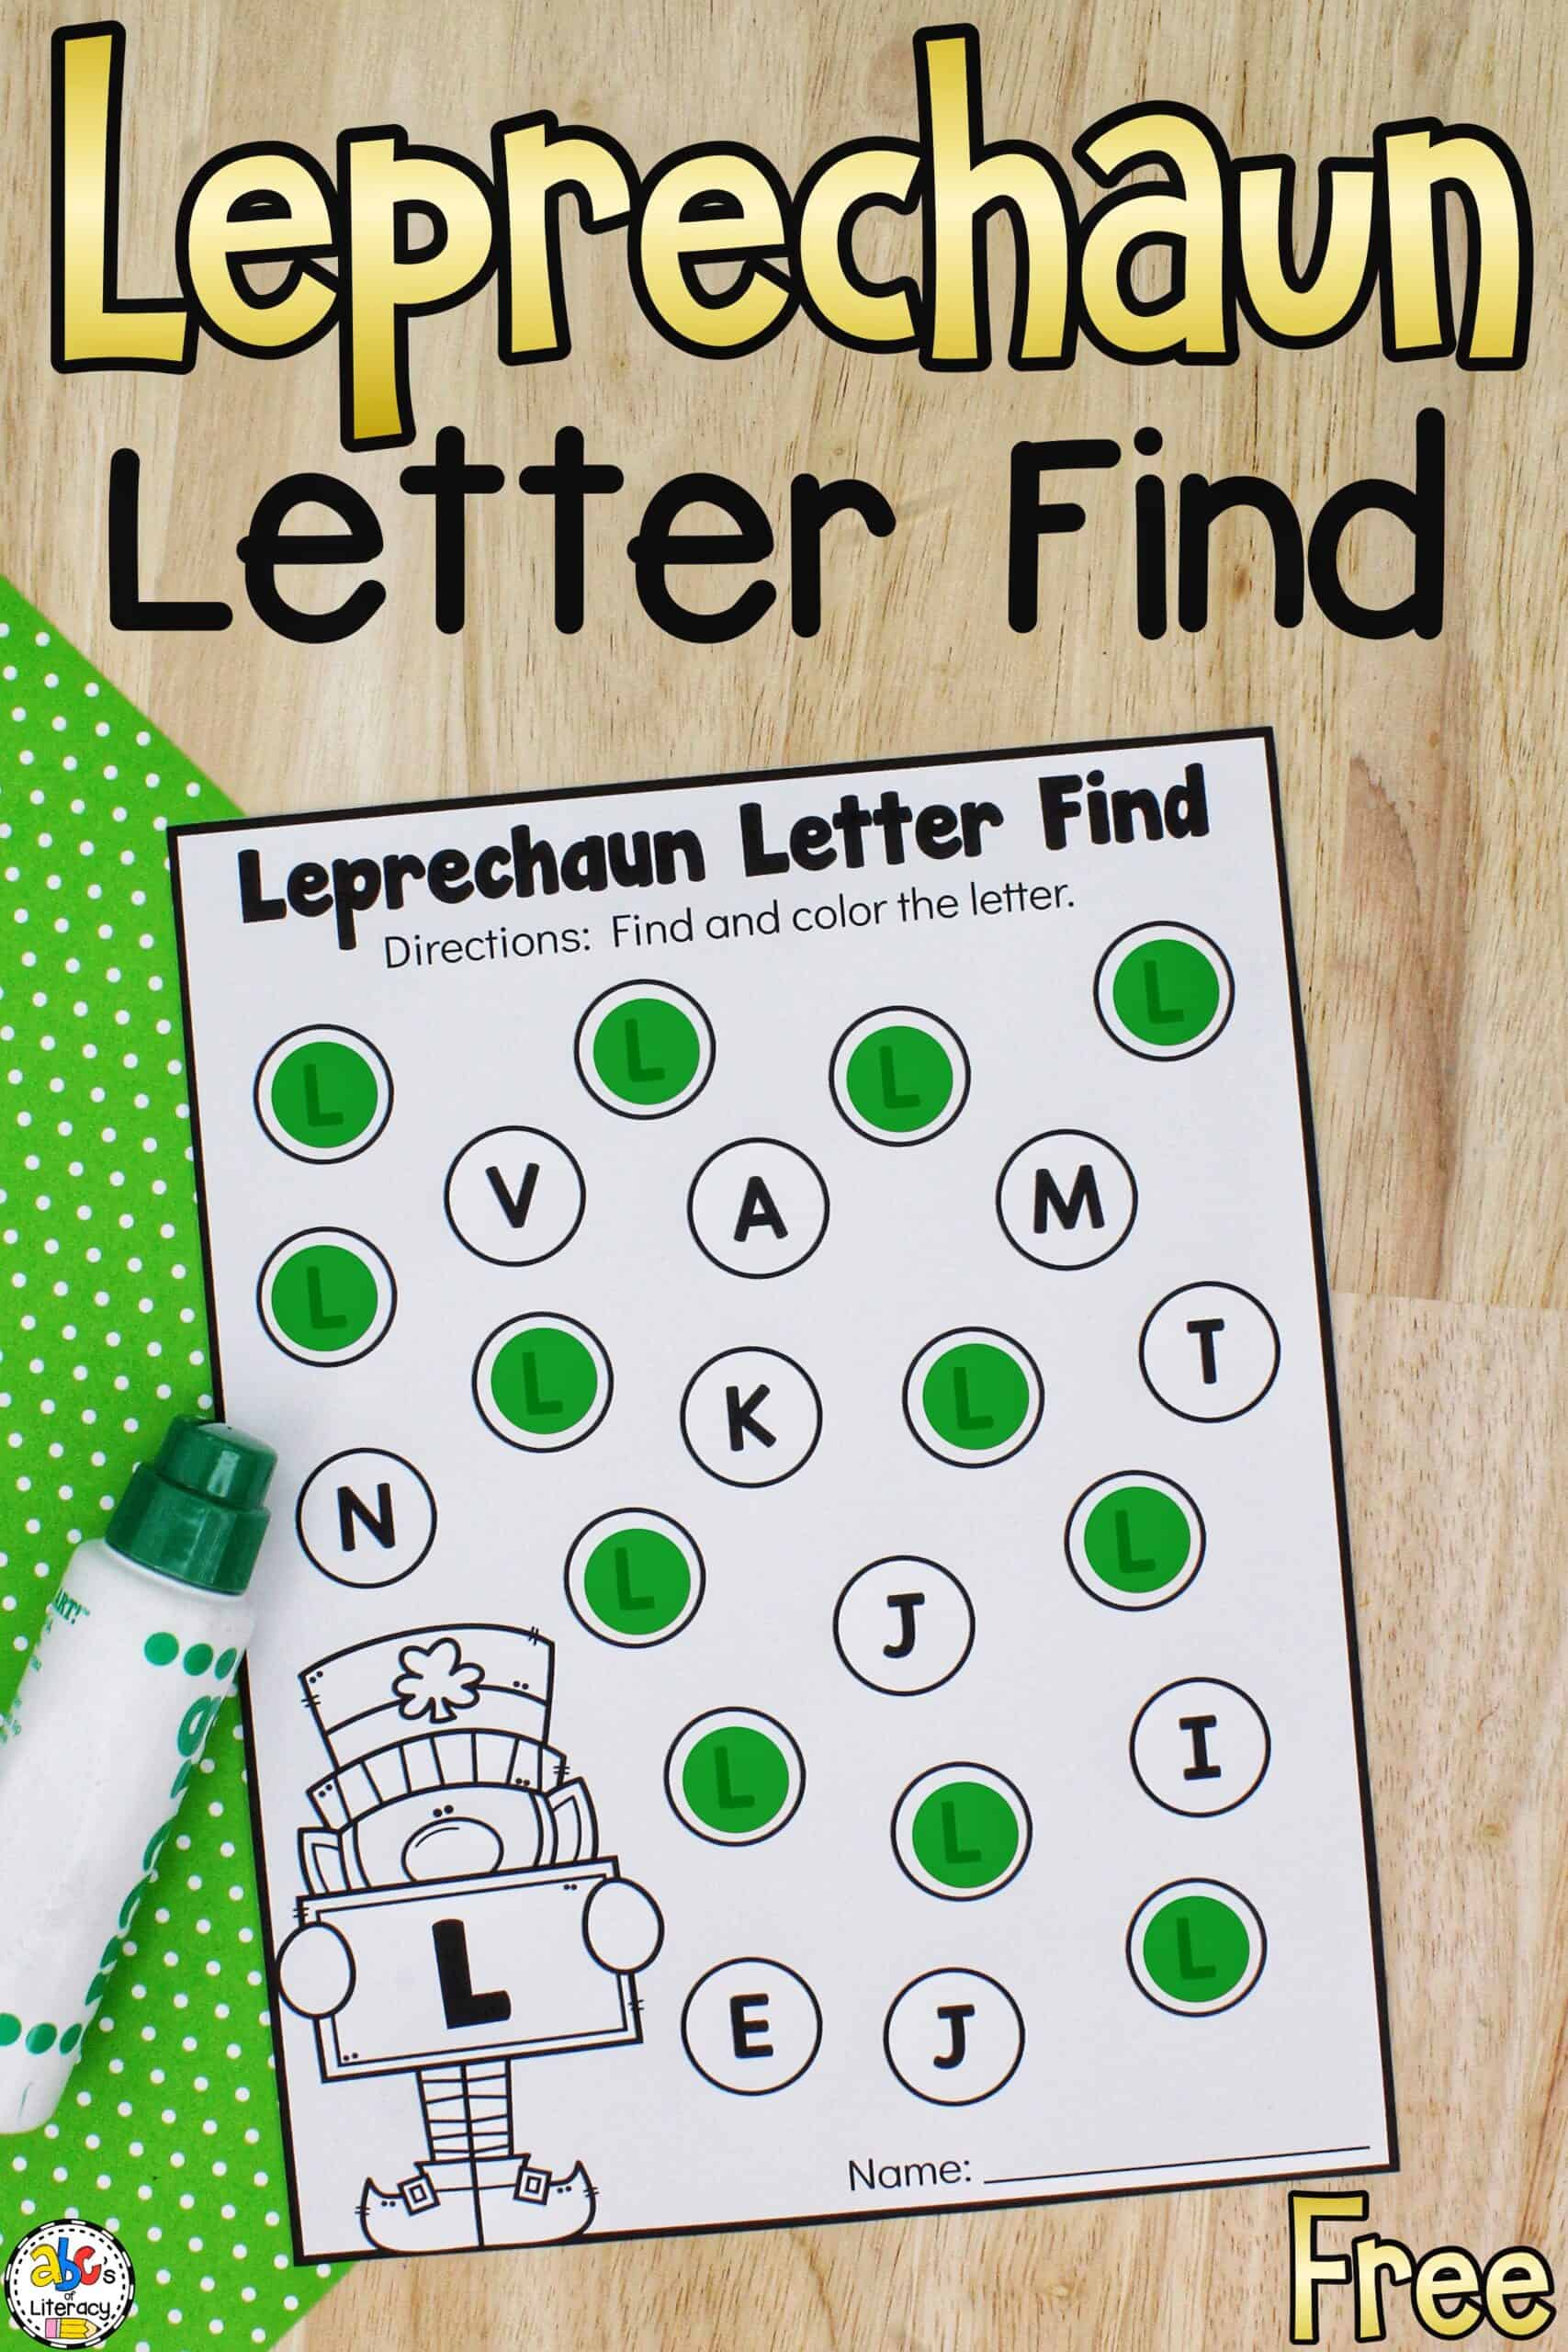 St. Patrick's Day Letter Recognition Activity